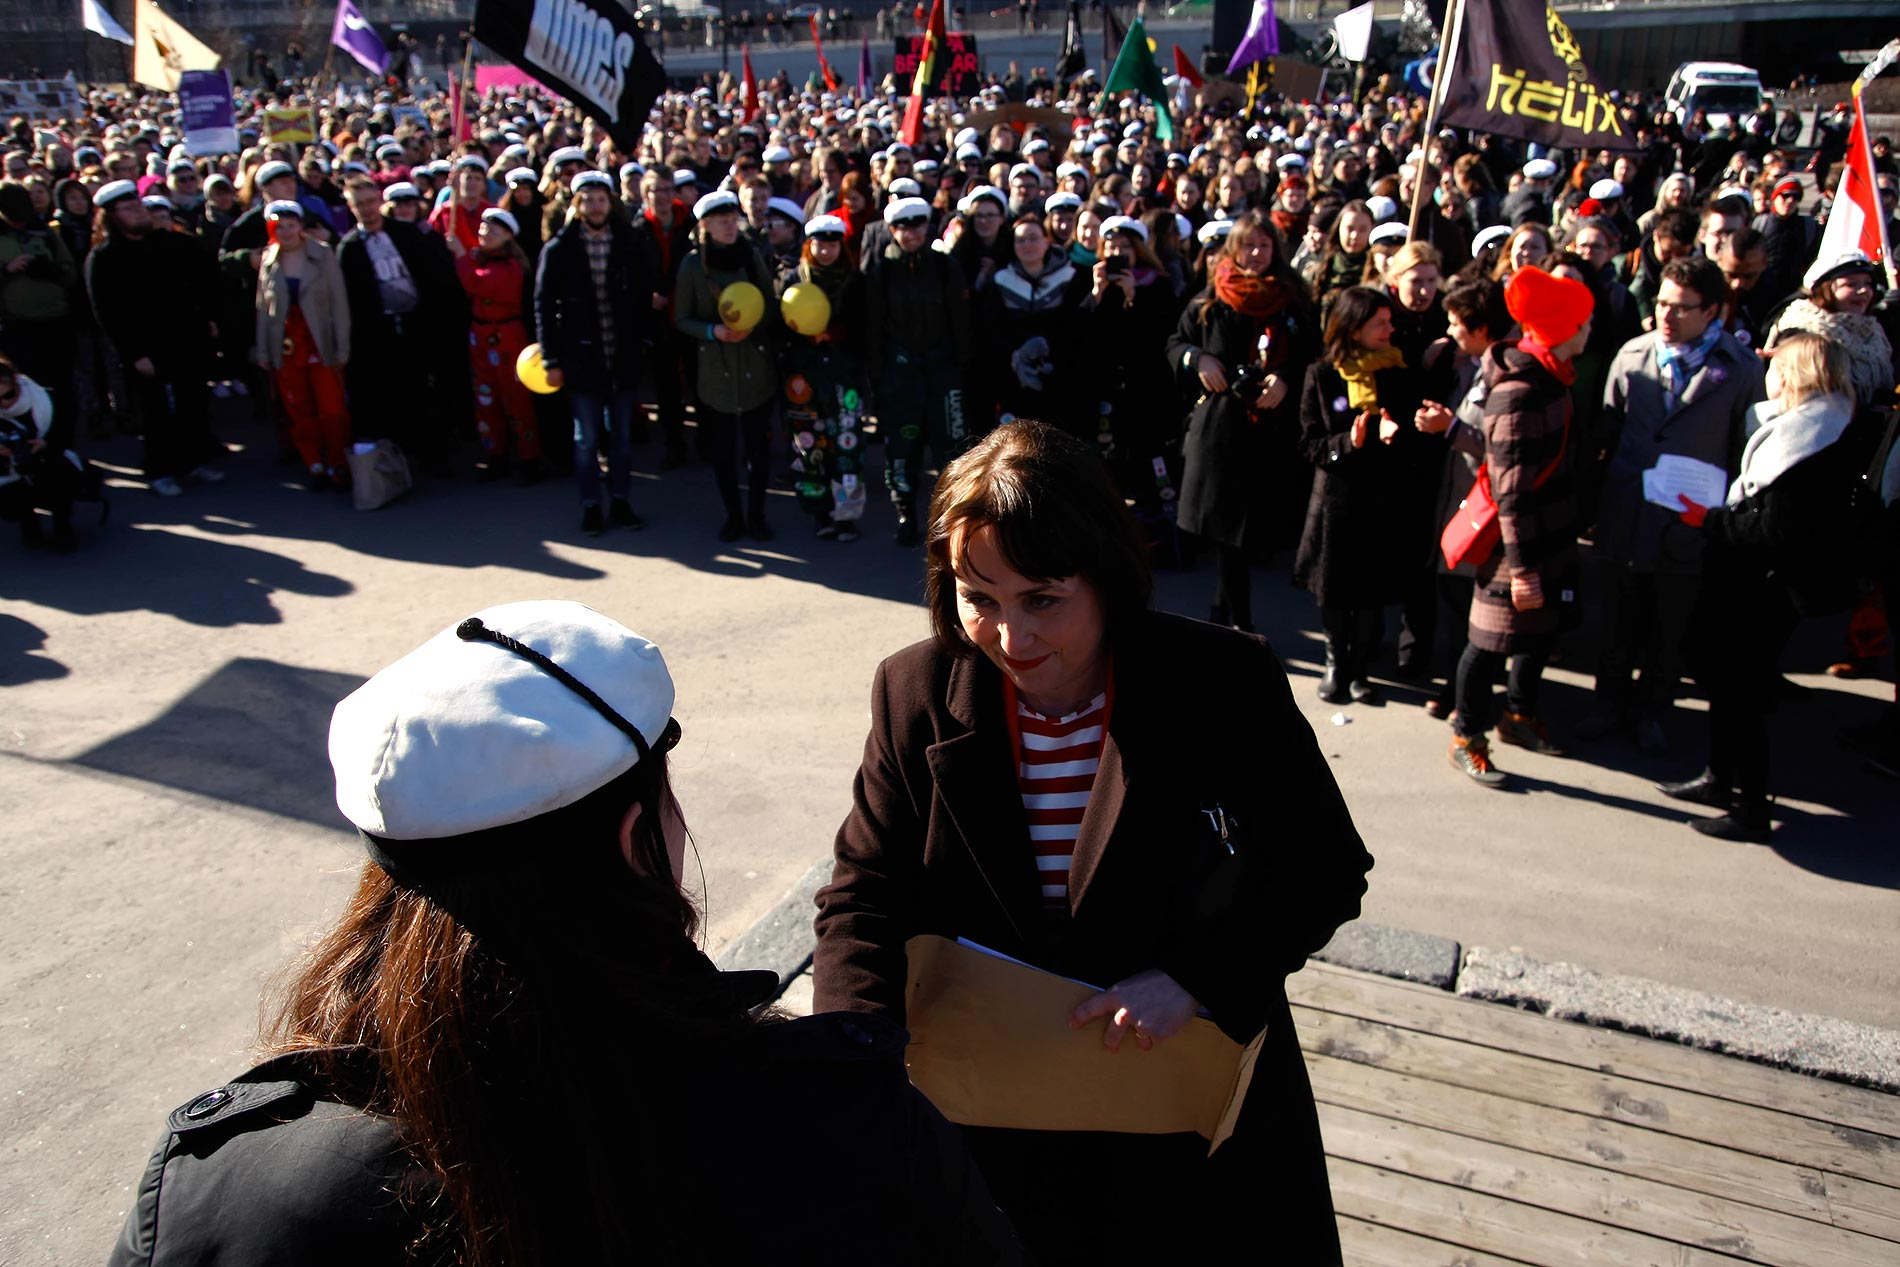 Raija Vahasalo, the chair of the Education and Culture Committee, receiving a petition with a few thousand signatures demanding that the right to student aid is not altered. Picture: Tony Öhberg for Finland Today